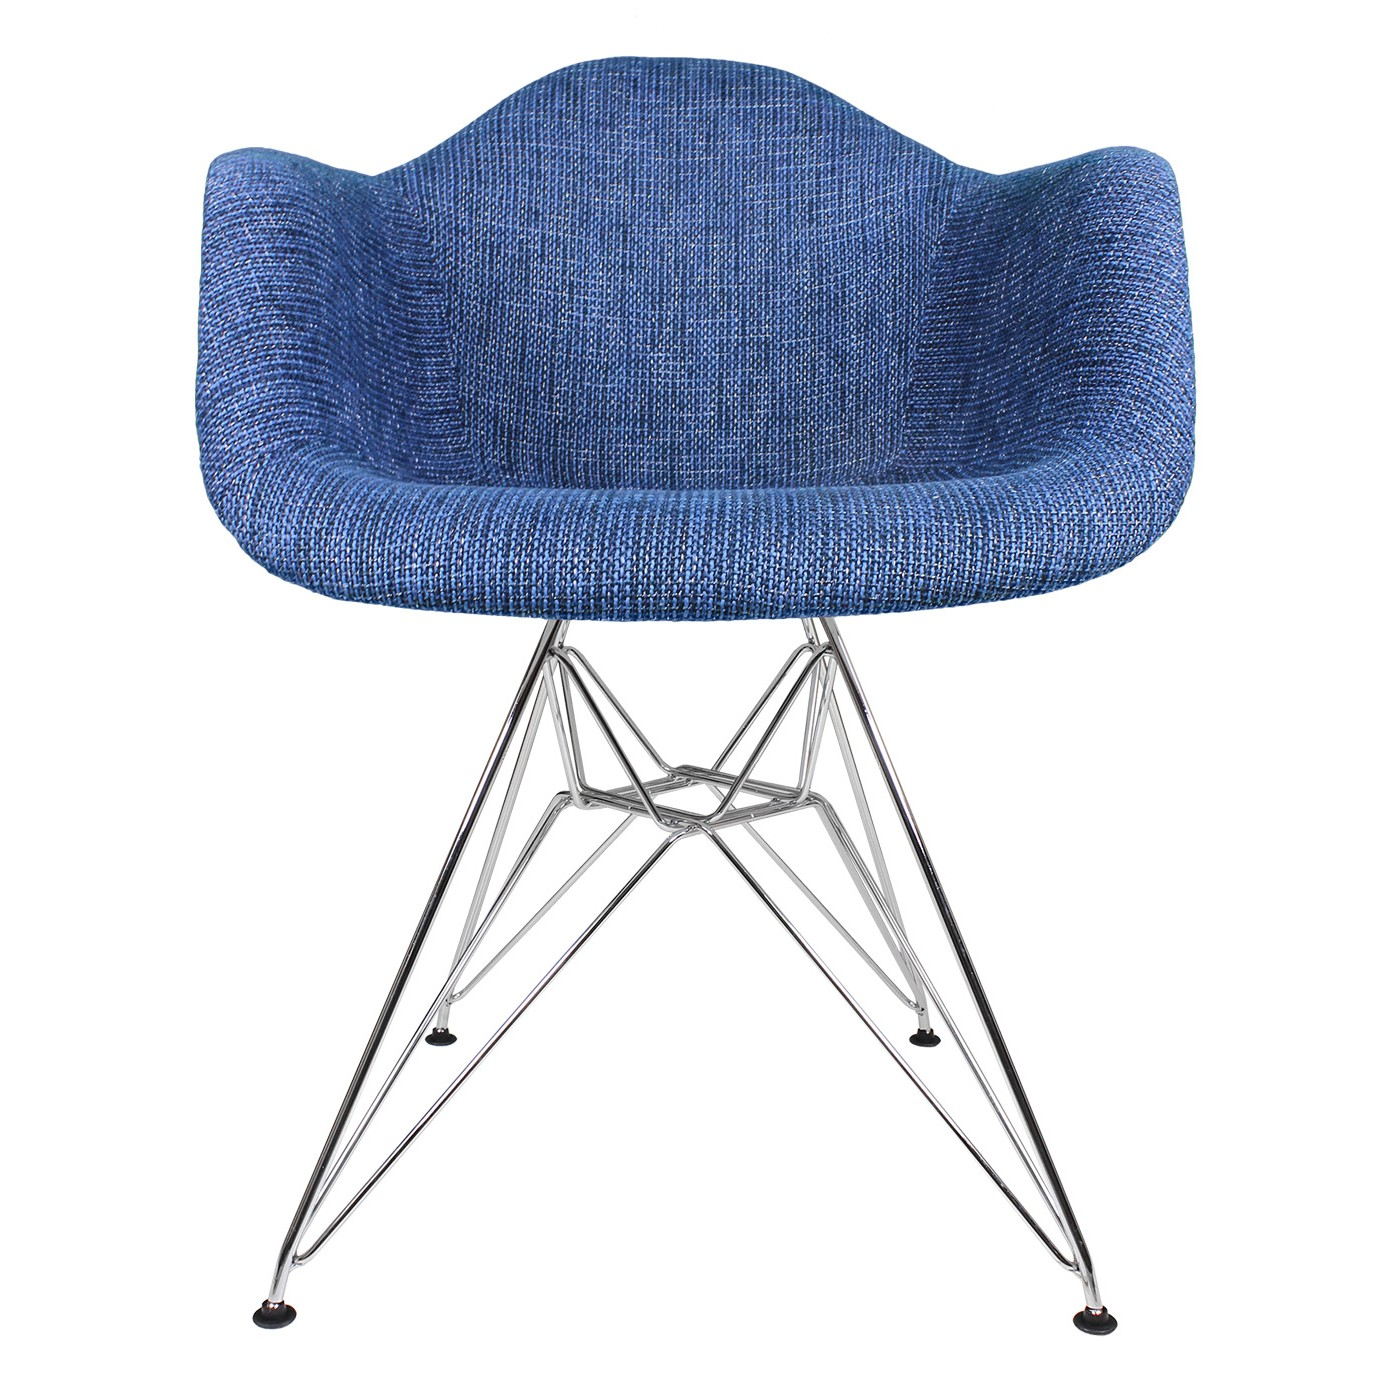 Denim Blue Woven Fabric Upholstered Eames Style Accent Arm